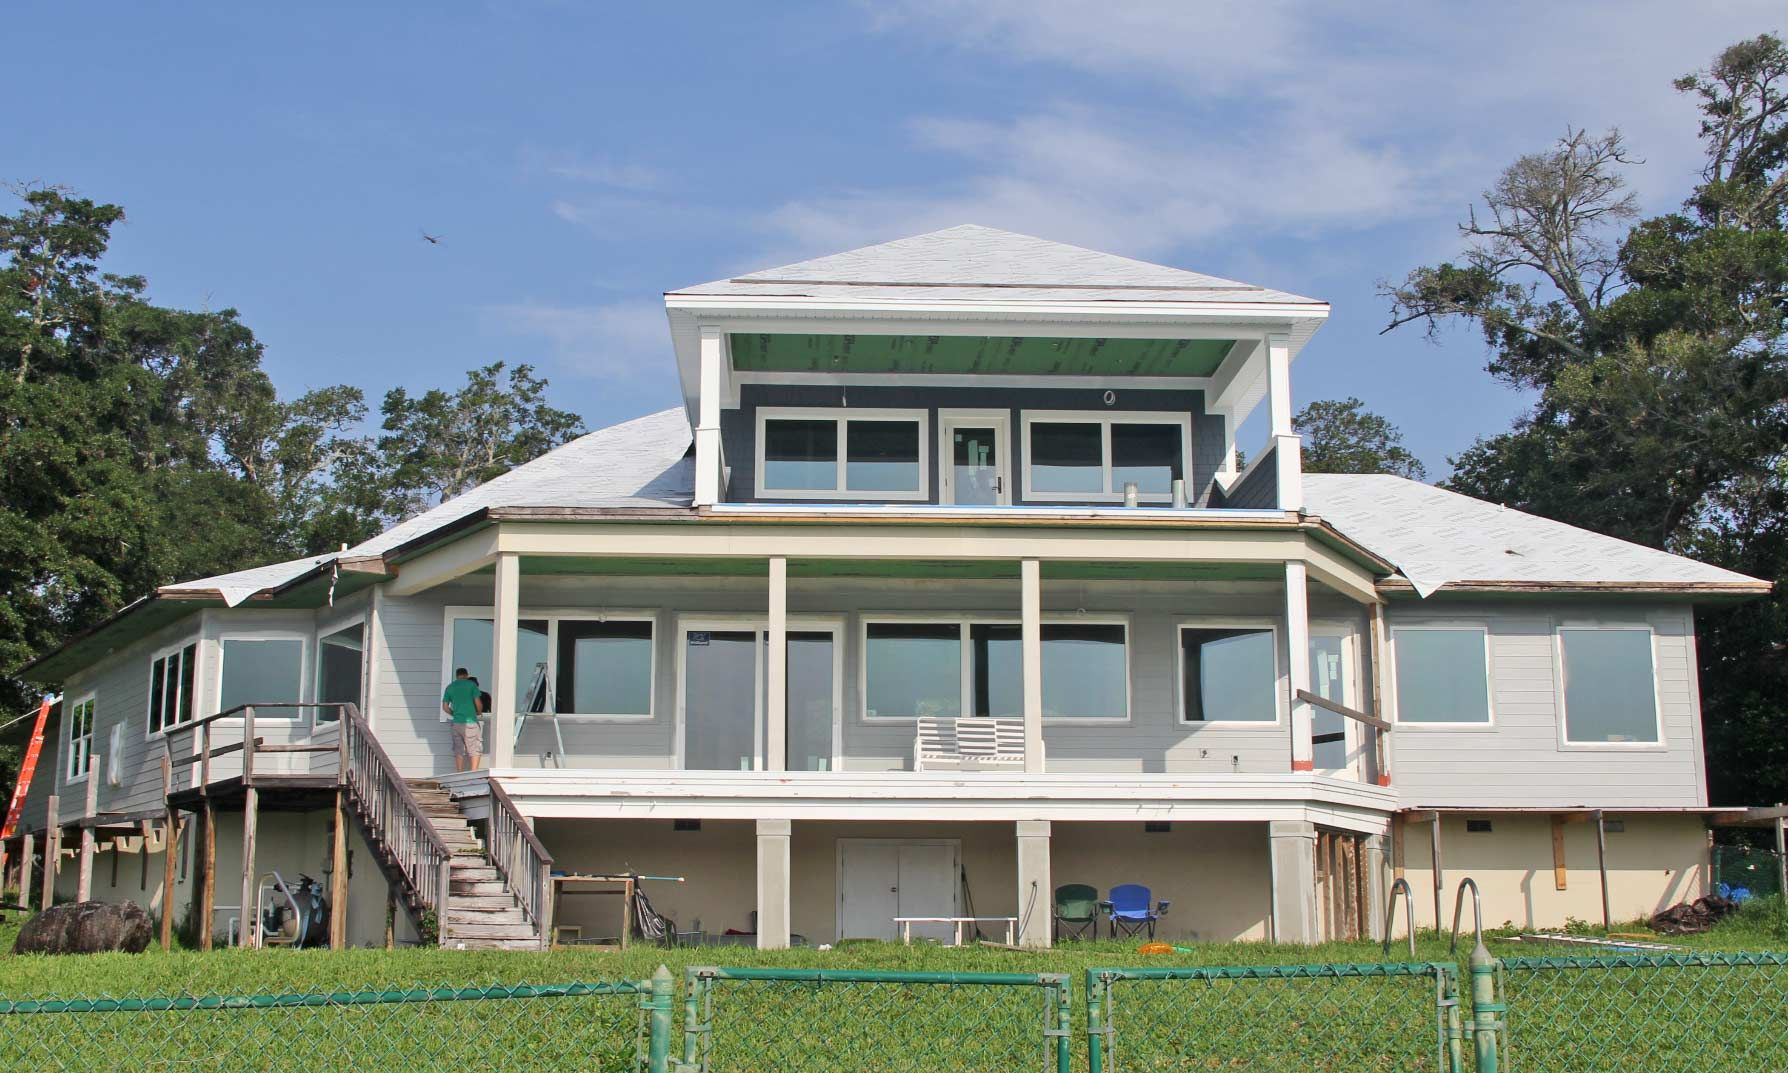 Seidel remodel by Acorn Fine Homes in Pensacola